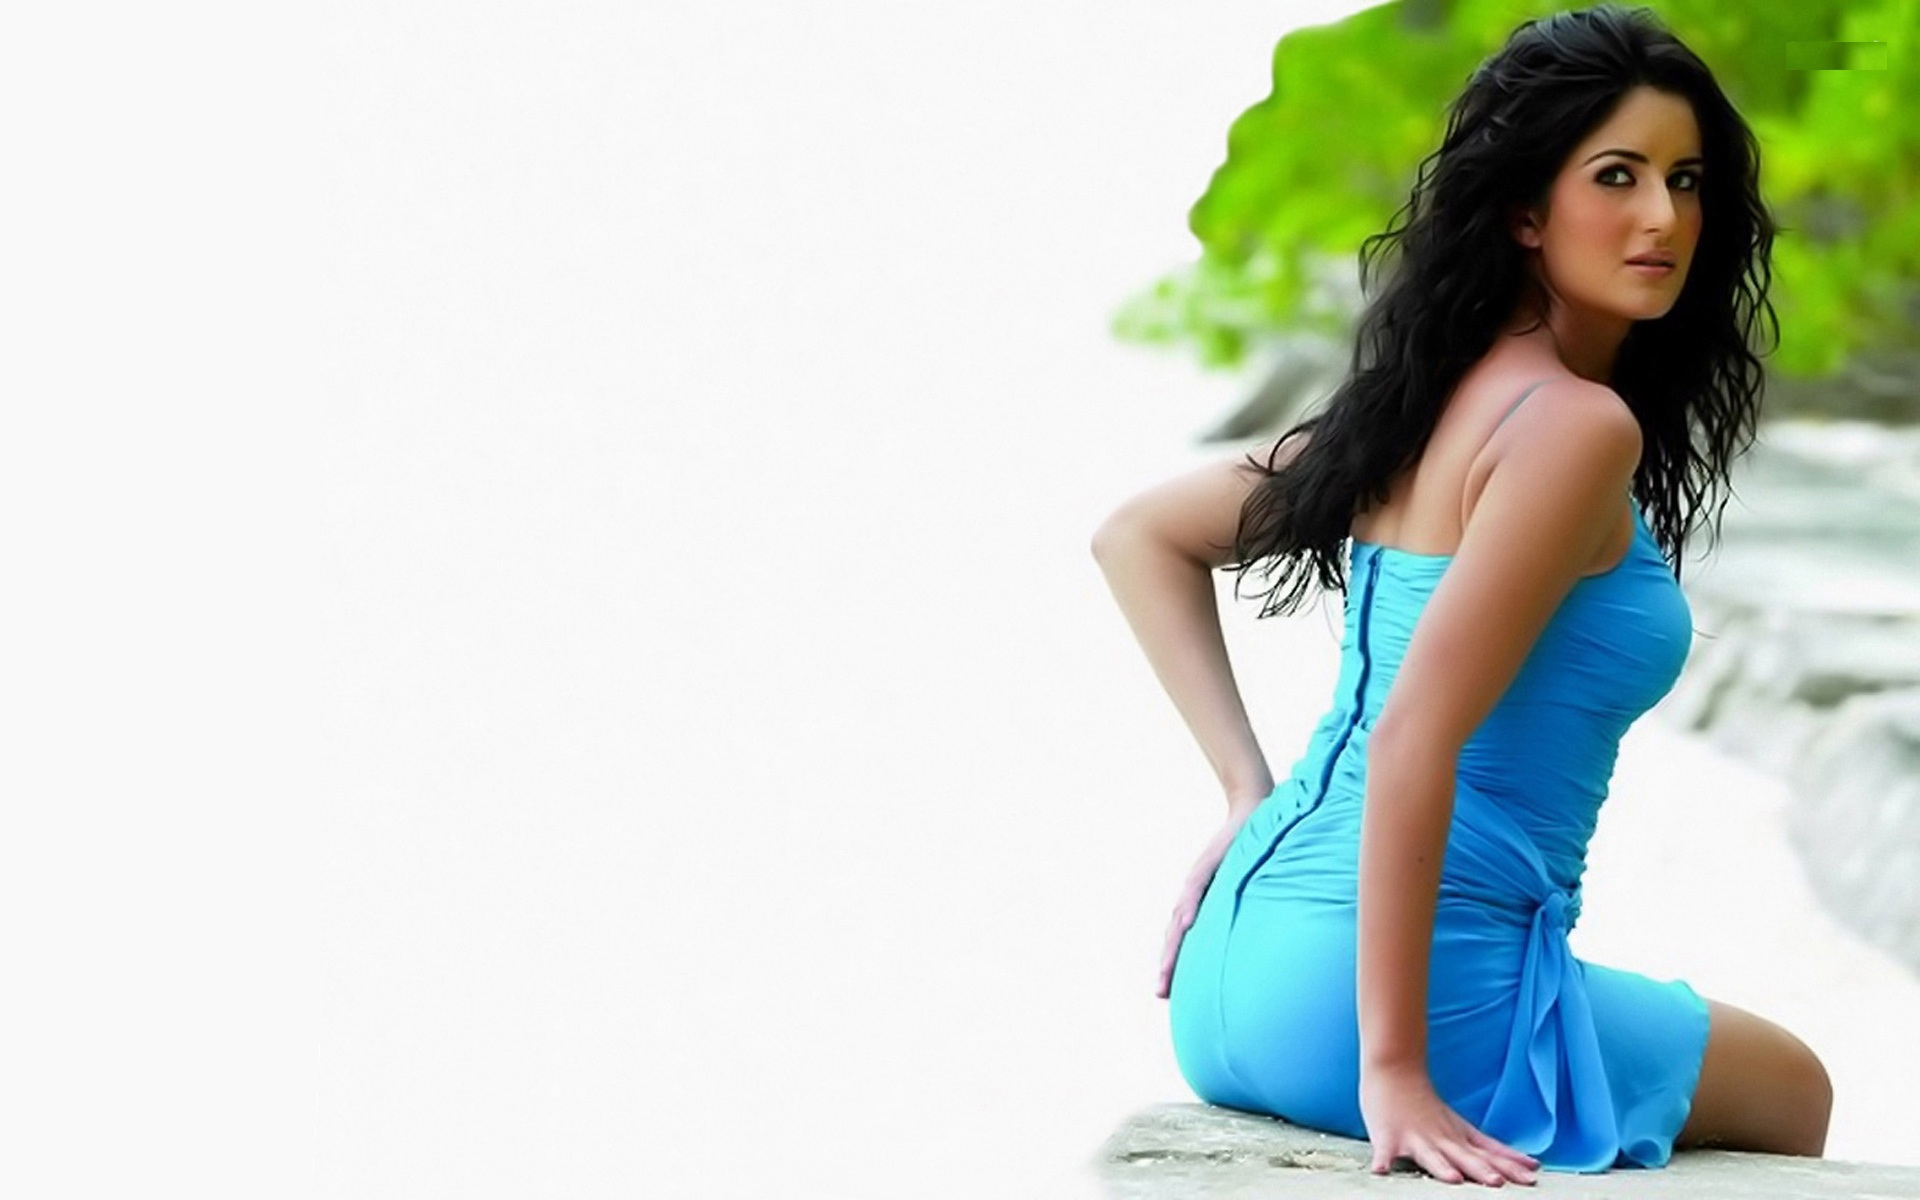 Katrina Kaif Hot HD Wallpapers, Sizzling Unseen Pictures